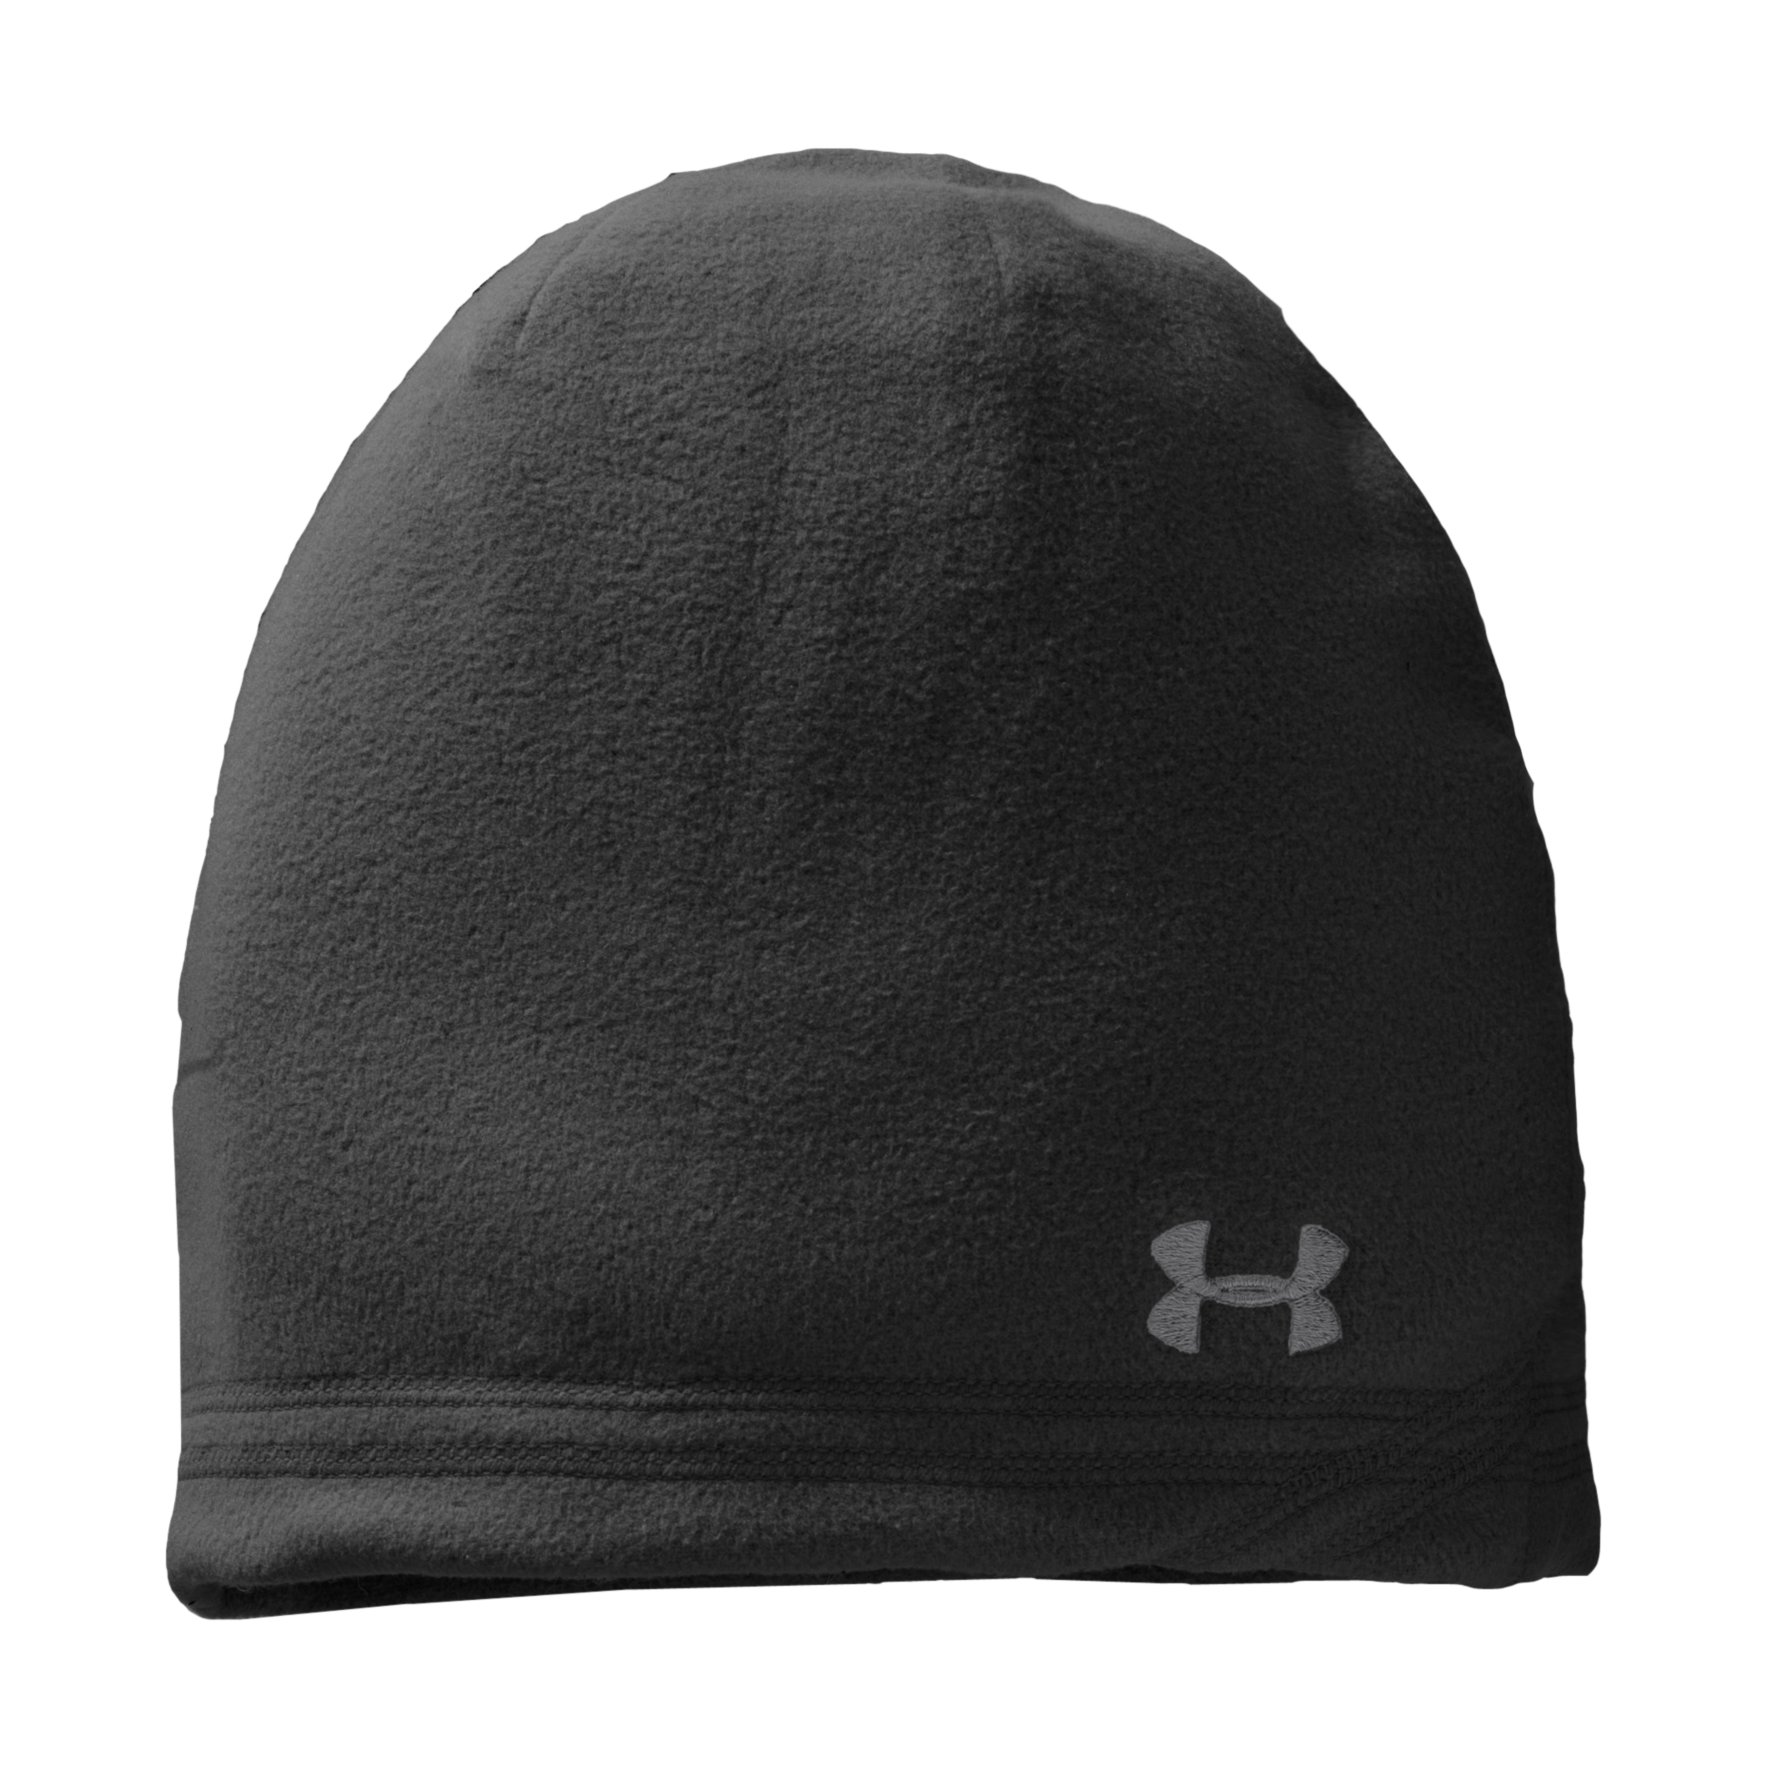 Under Armour Outlet Blowout + Free Shipping